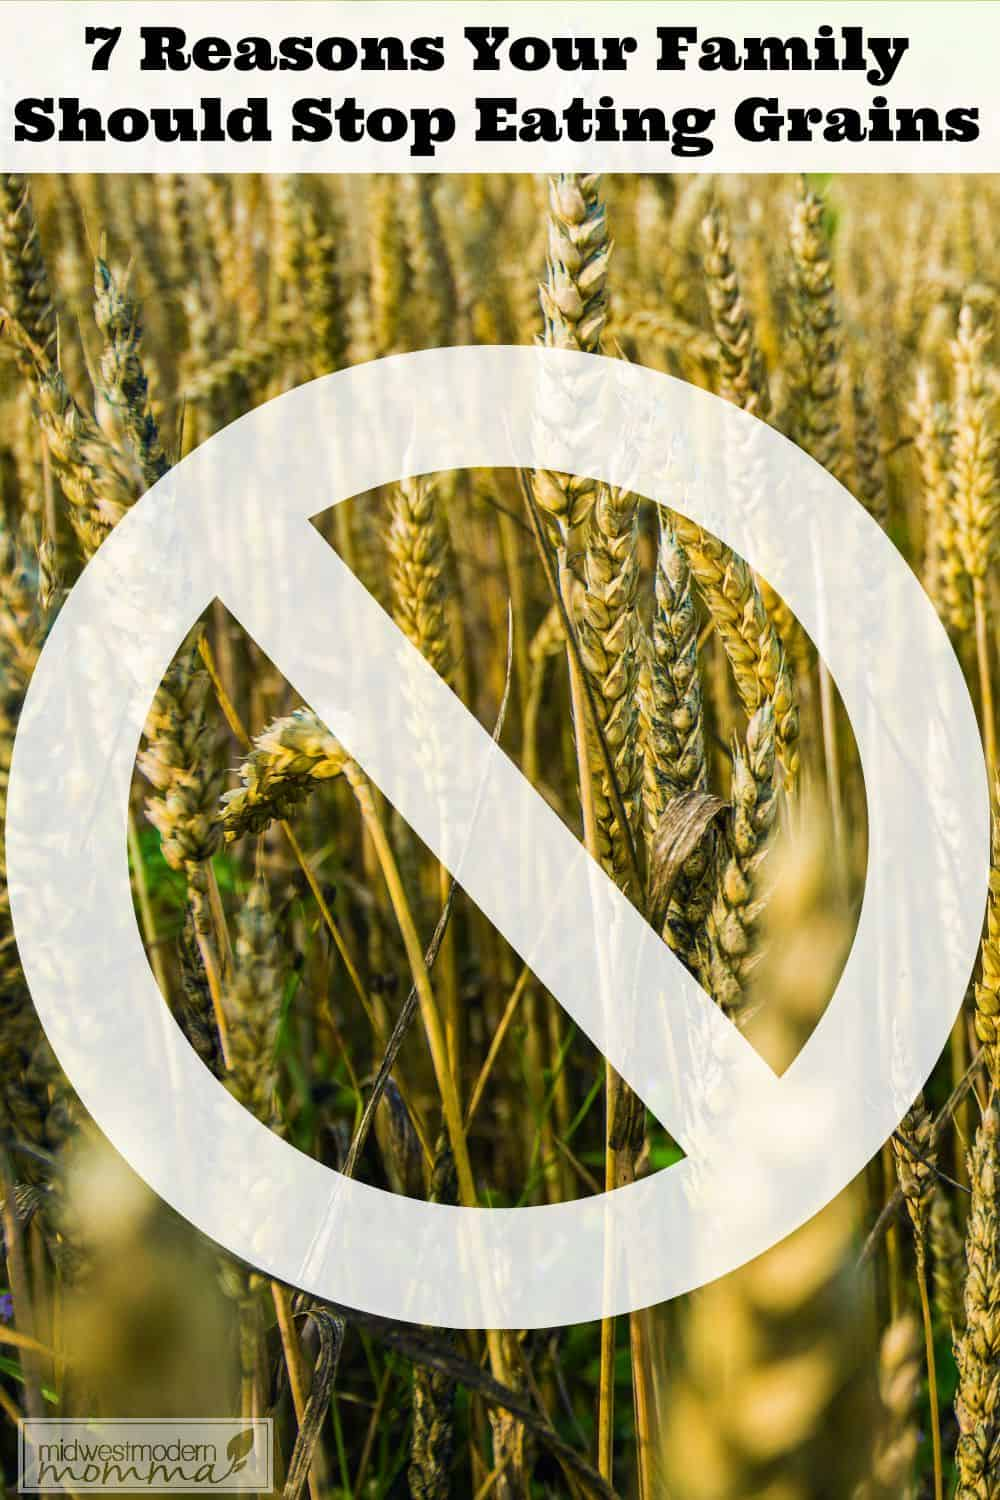 7 Reasons Not to Eat Grains